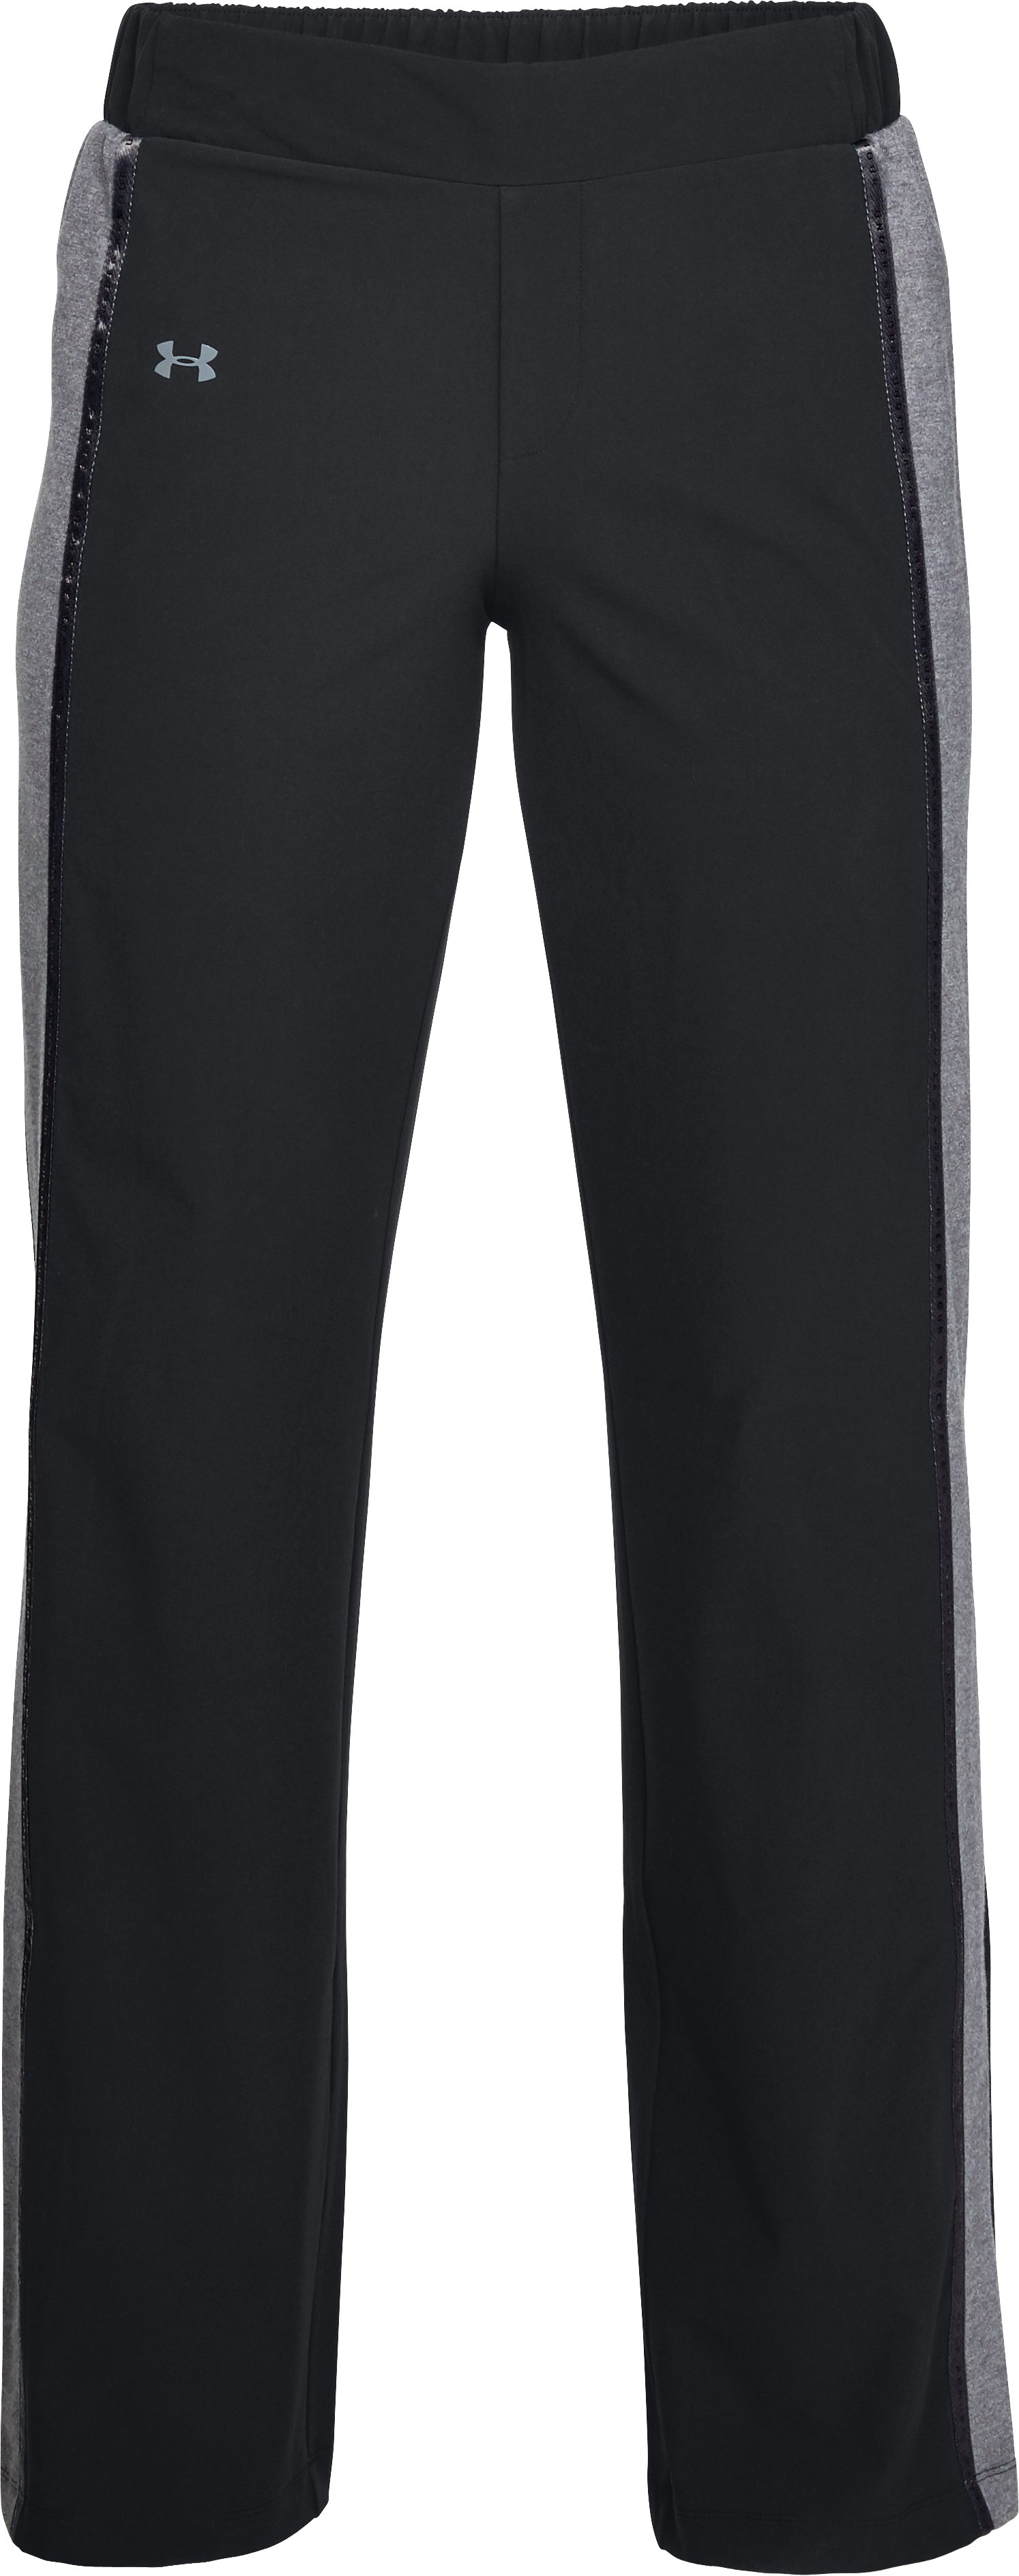 Women's UA Woven Wide Leg Pants, Black ,